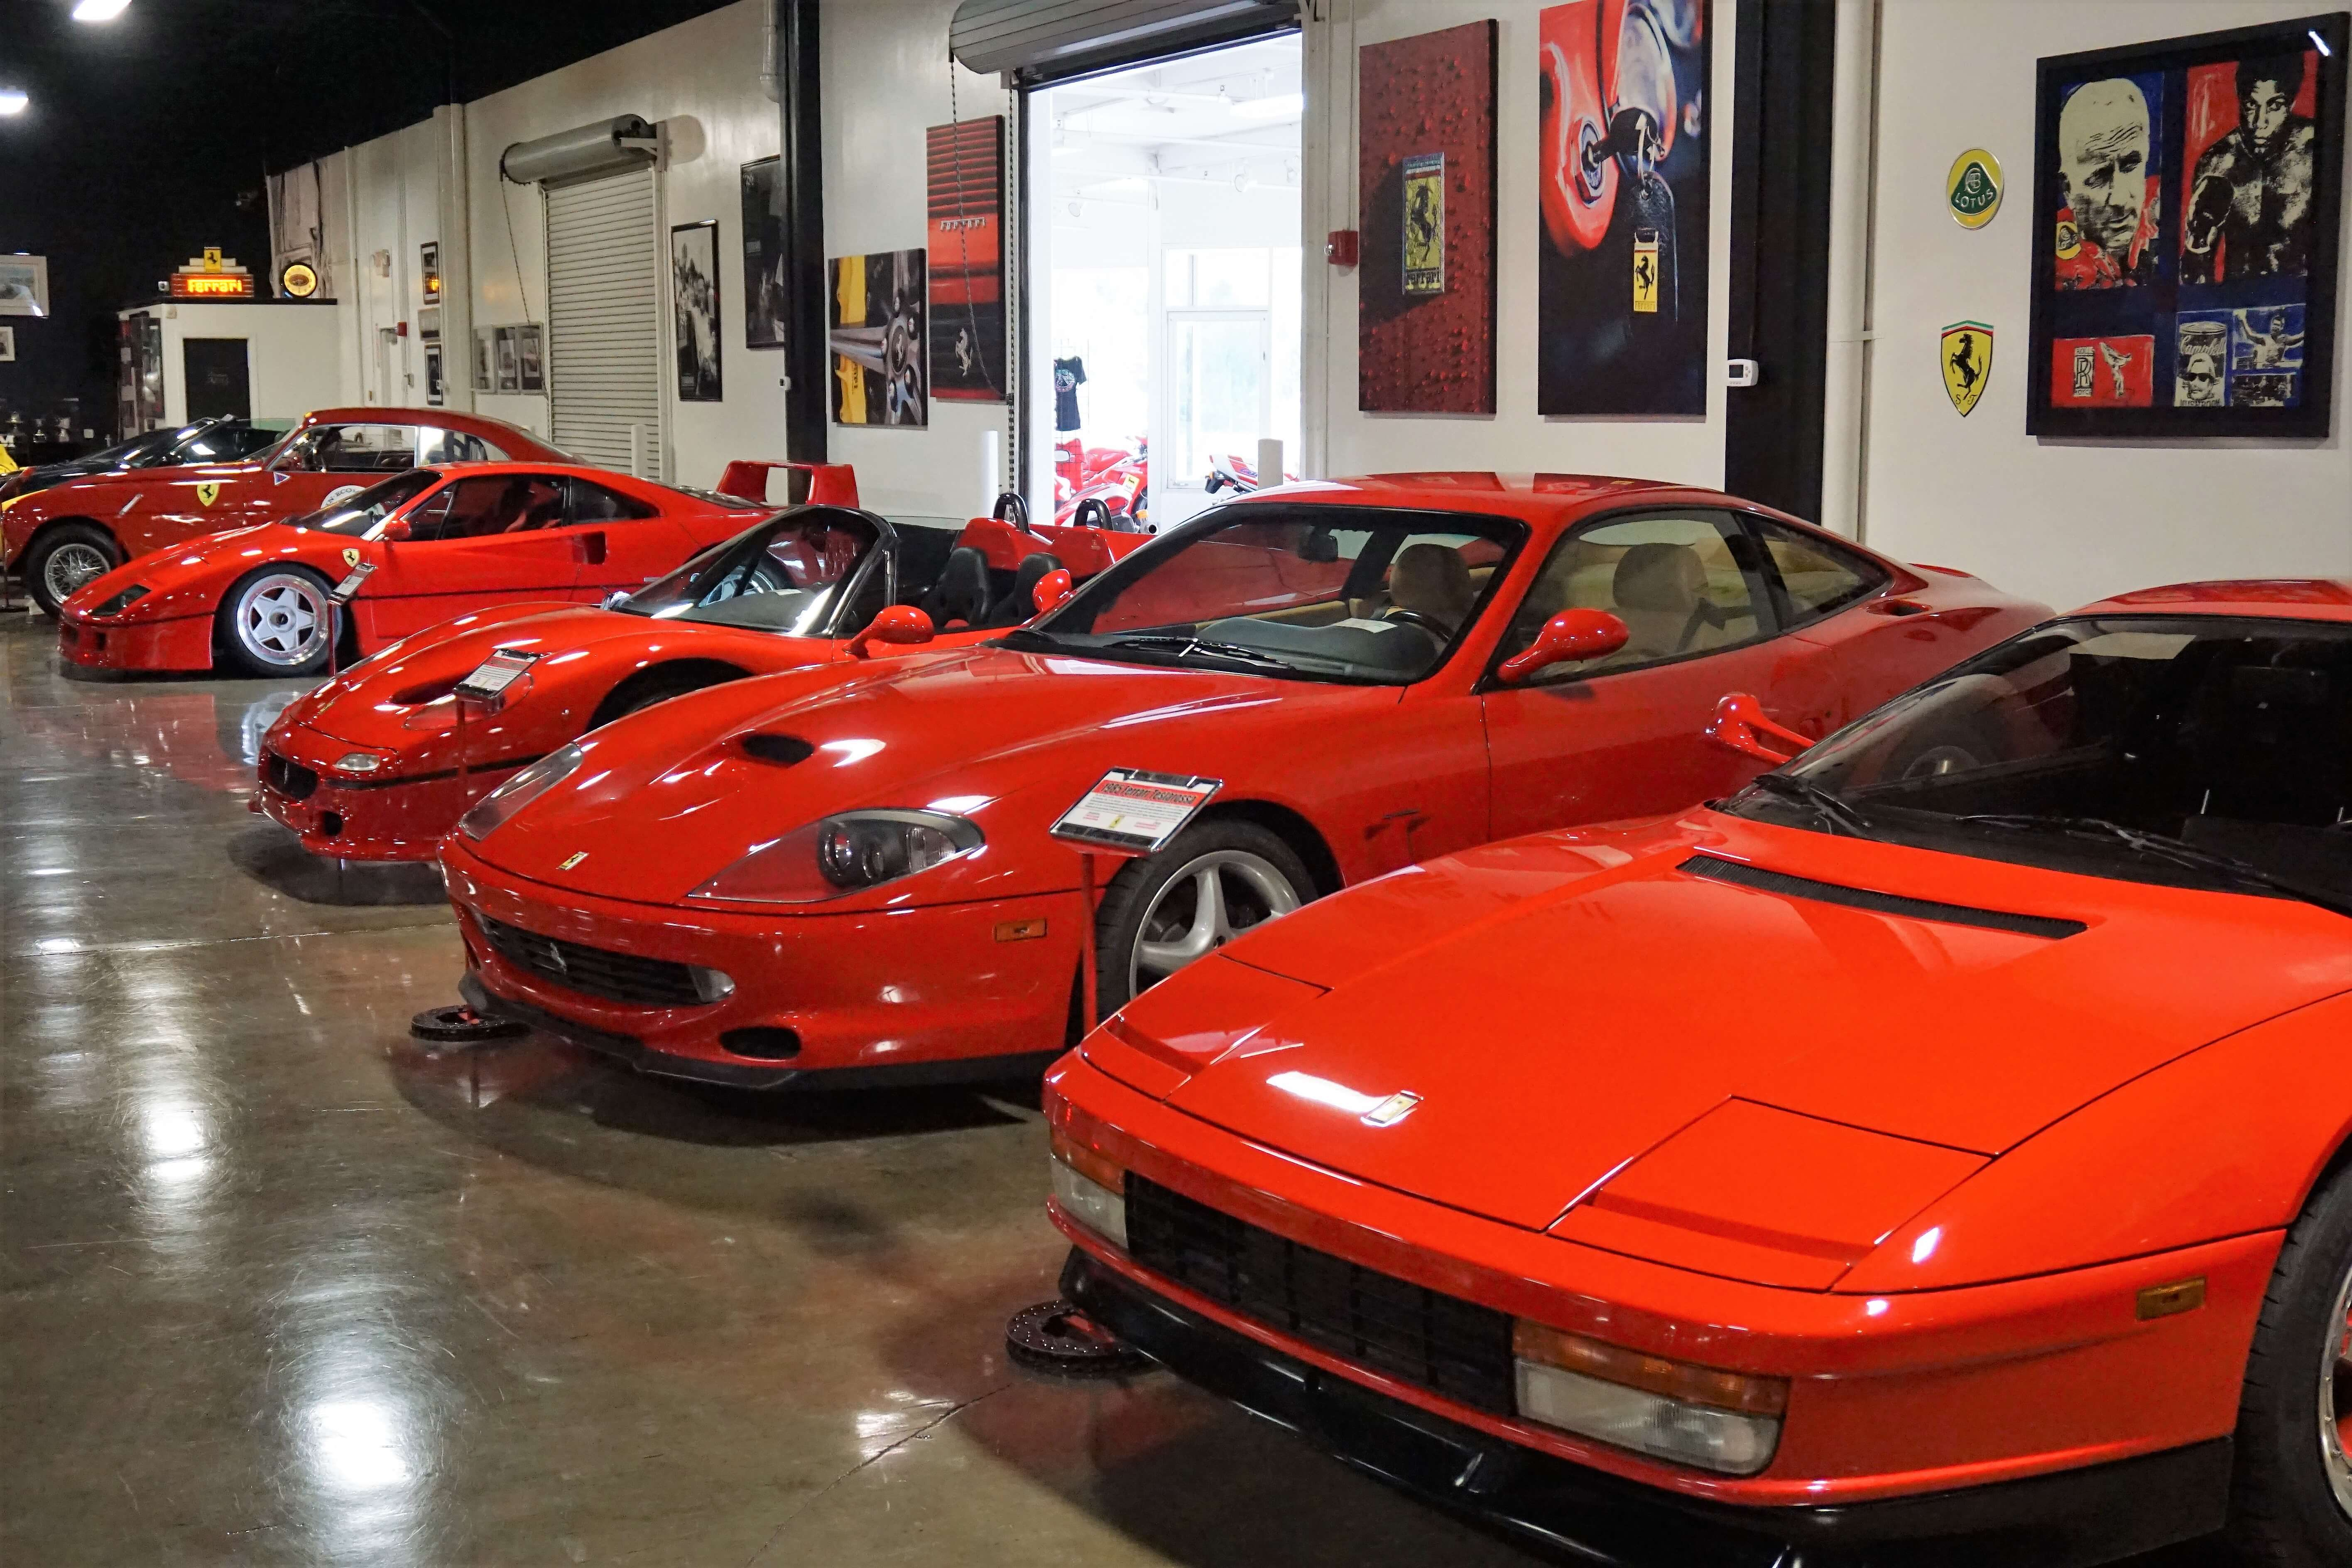 A row of red cars inside the Marconi Automotive Museum